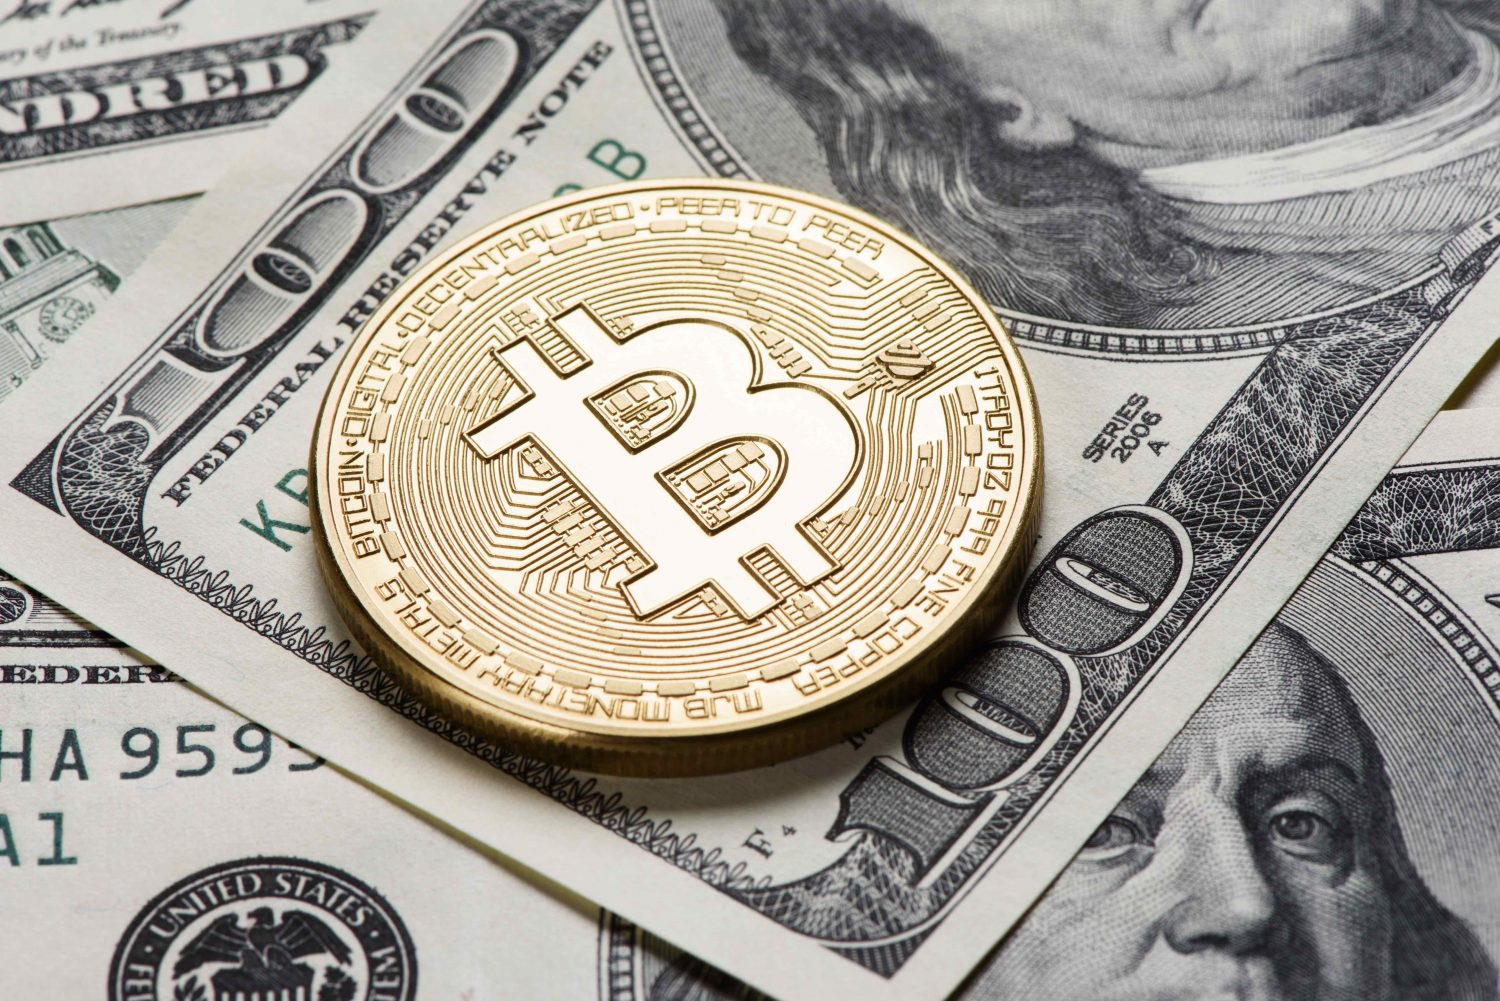 You can also choose to automatically mine the most profitable coin. Bitcoin Price Surges to One-Month High as Tech Outlook